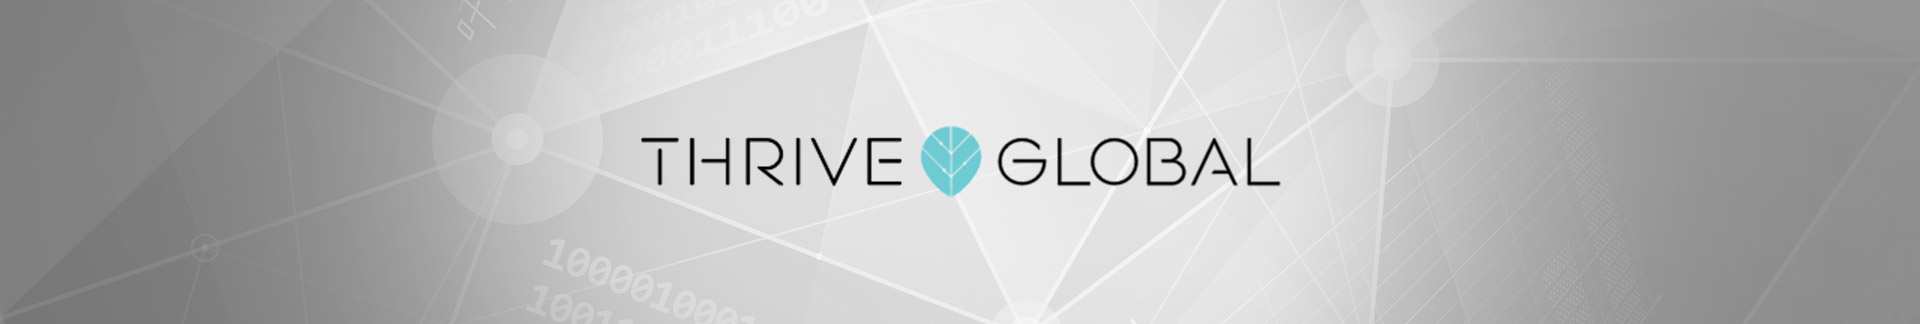 Thrive Global news banner